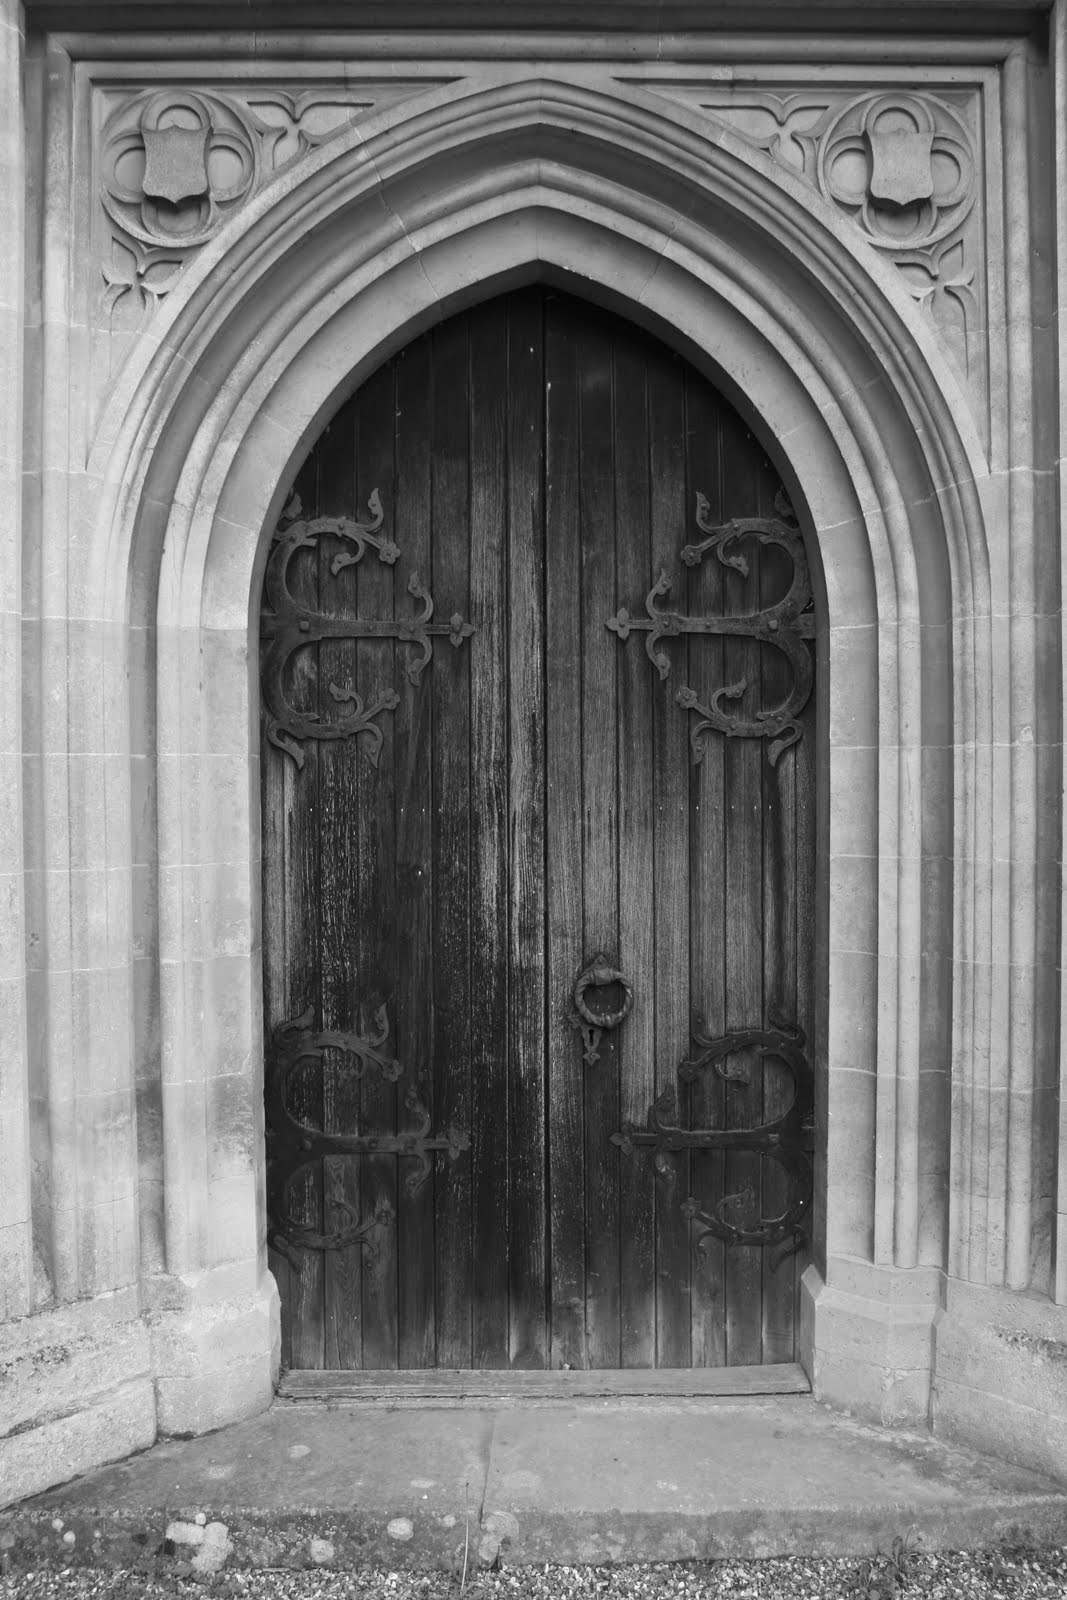 0905 049 Effingham, Surrey, England Door to the church